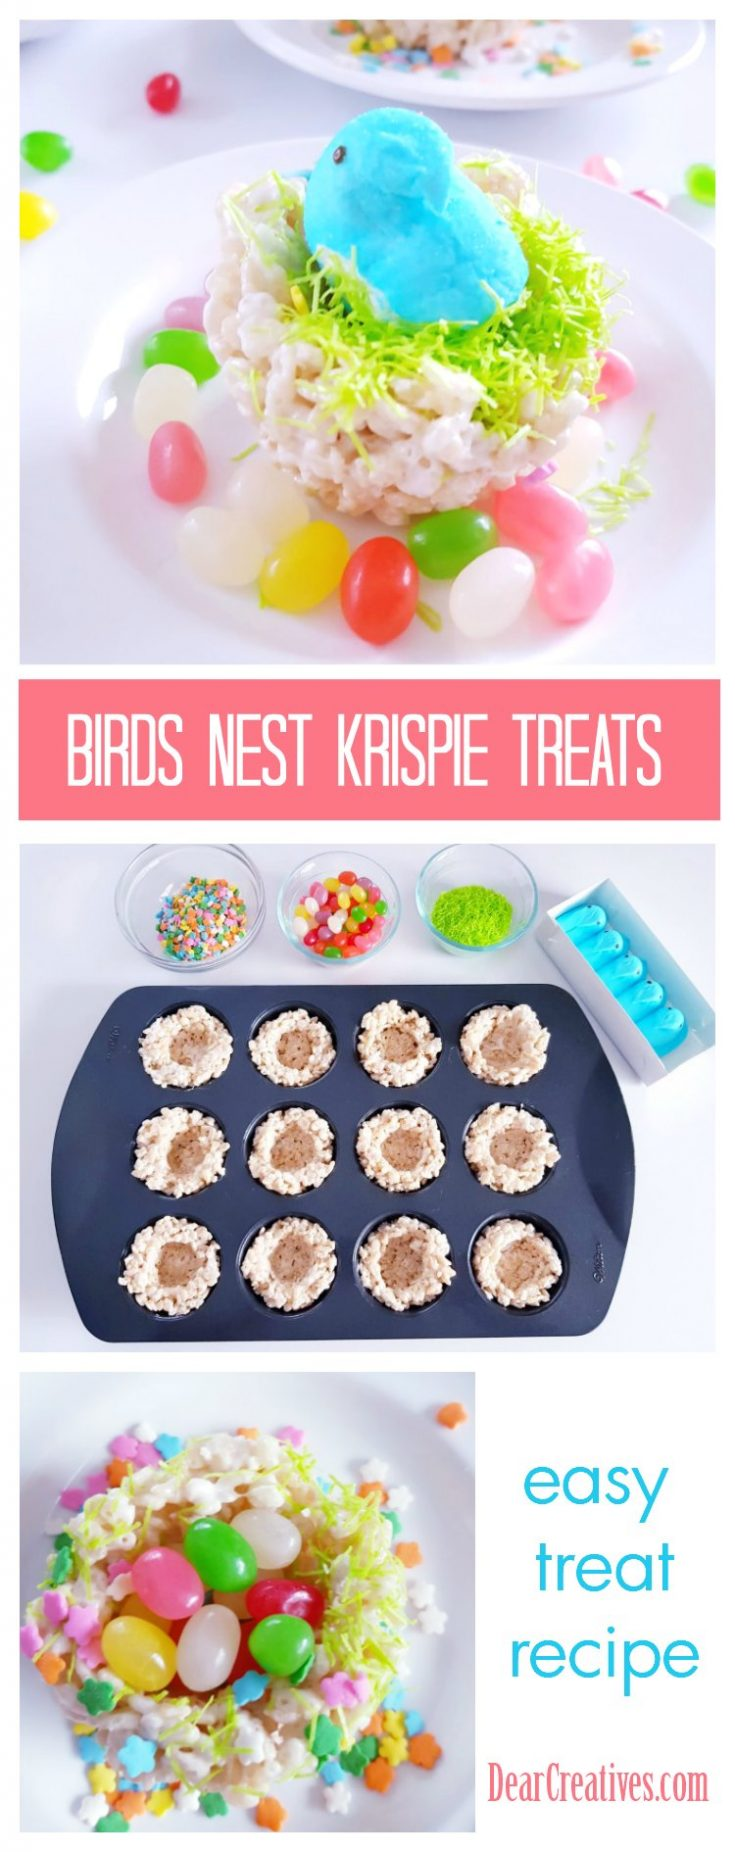 Easy to make birds nest Krispie treat cookies. This is a no-bake cereal cookie made with Krispie cereal,  melted marshmallows and candies. Shape your bird nest, let them dry and have the kids help you decorate them for your spring and Easter celebrations! Fun and easy! Can be made in advance for Easter. #krispietreats #birdsnestcookies #krispiebirdsnestcookies #birdsnestkrispietreats